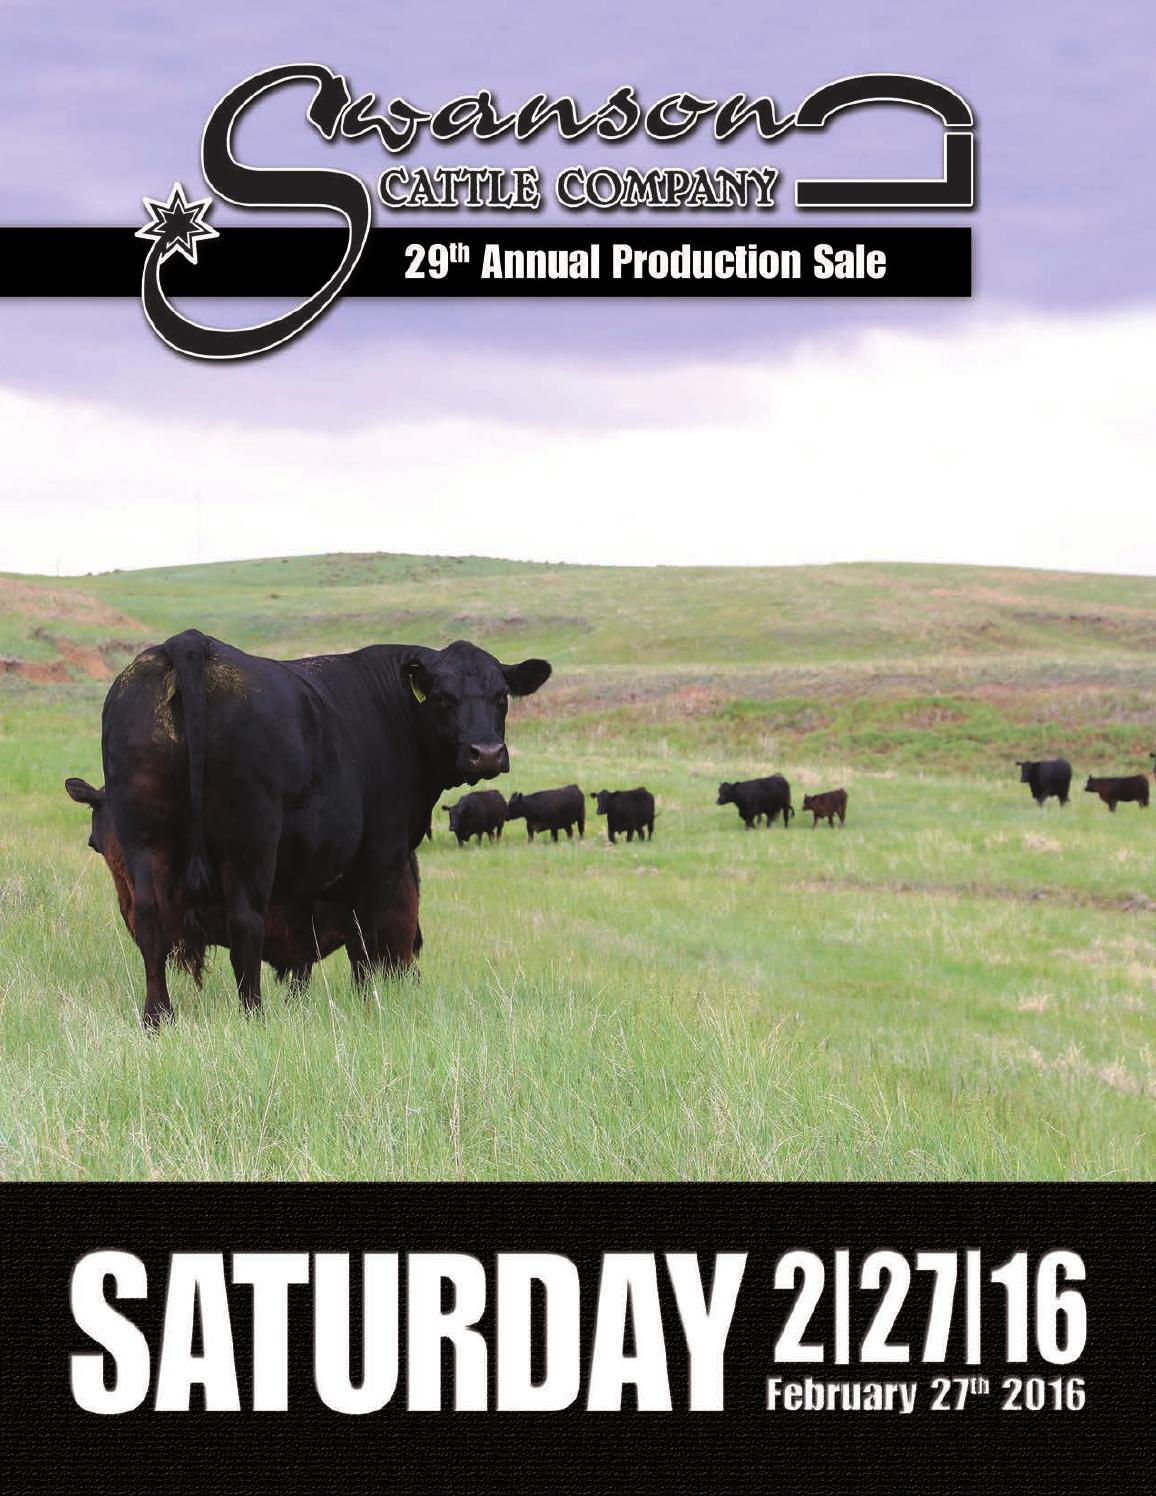 Swanson Cattle Company 29th Annual Production Sale by